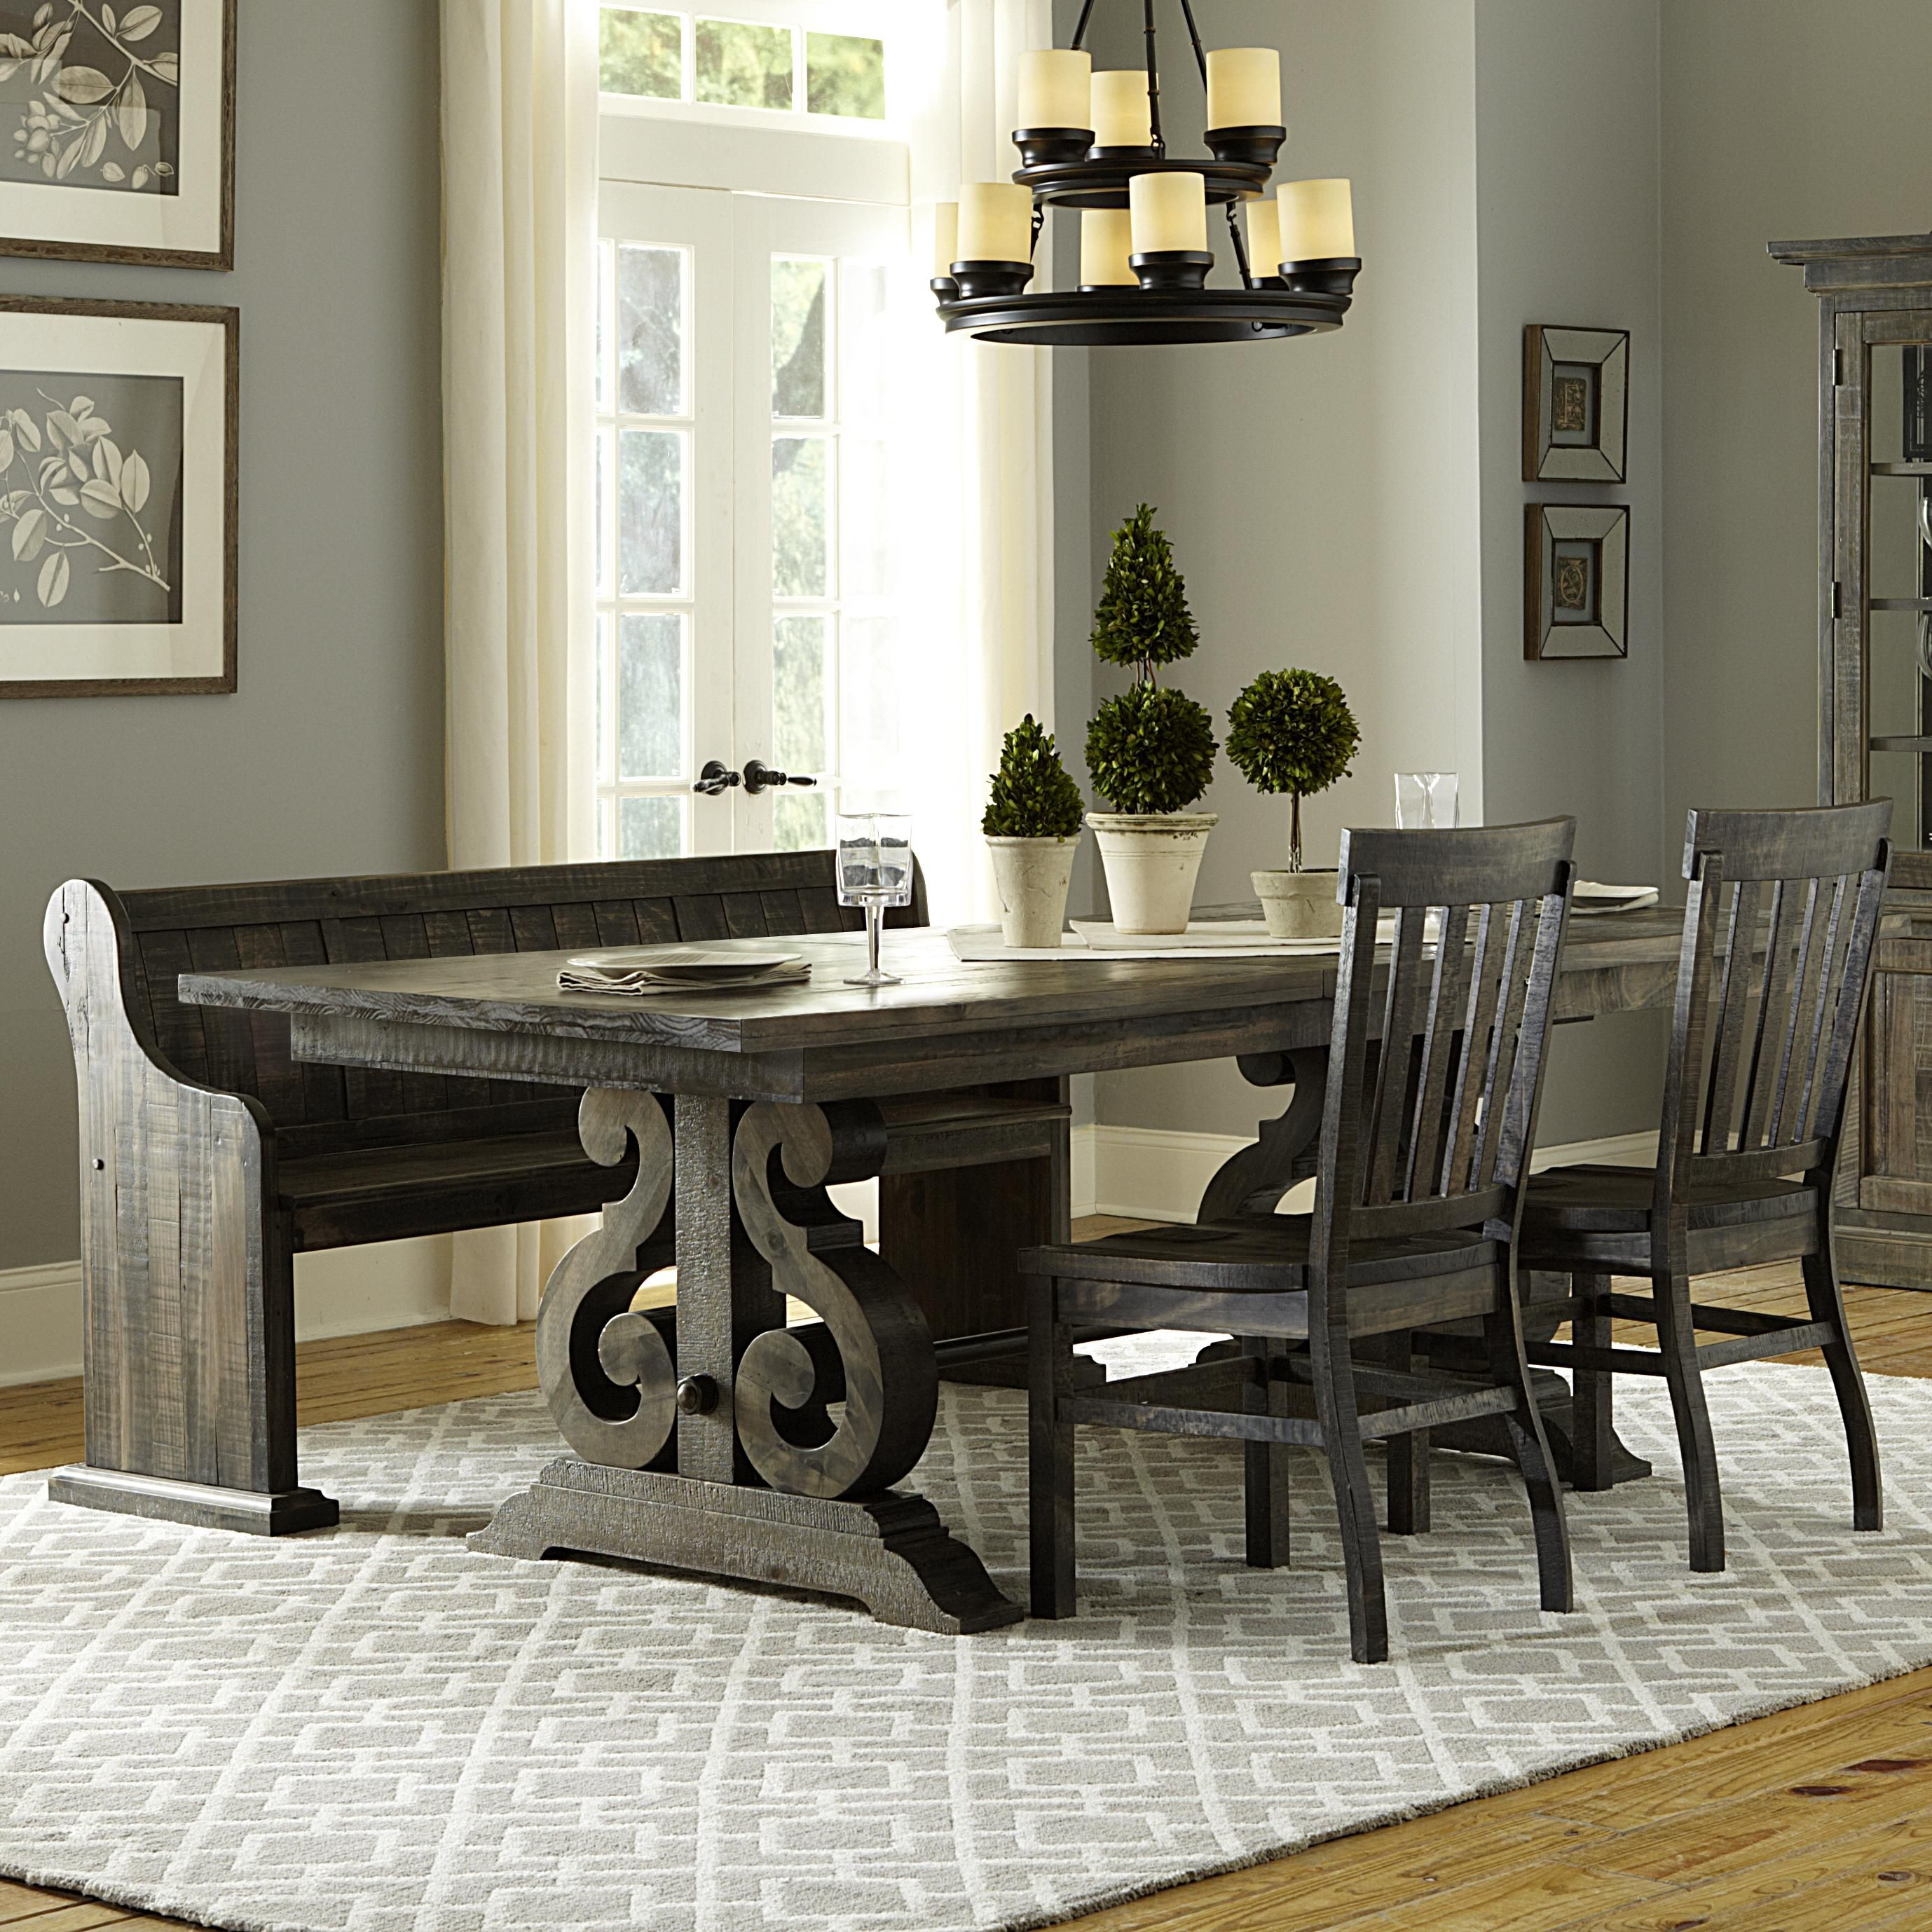 Bellamy 4 Pc Dining Set By Magnussen Home Dining Room Sets Dining Room Table Dining Table Chairs